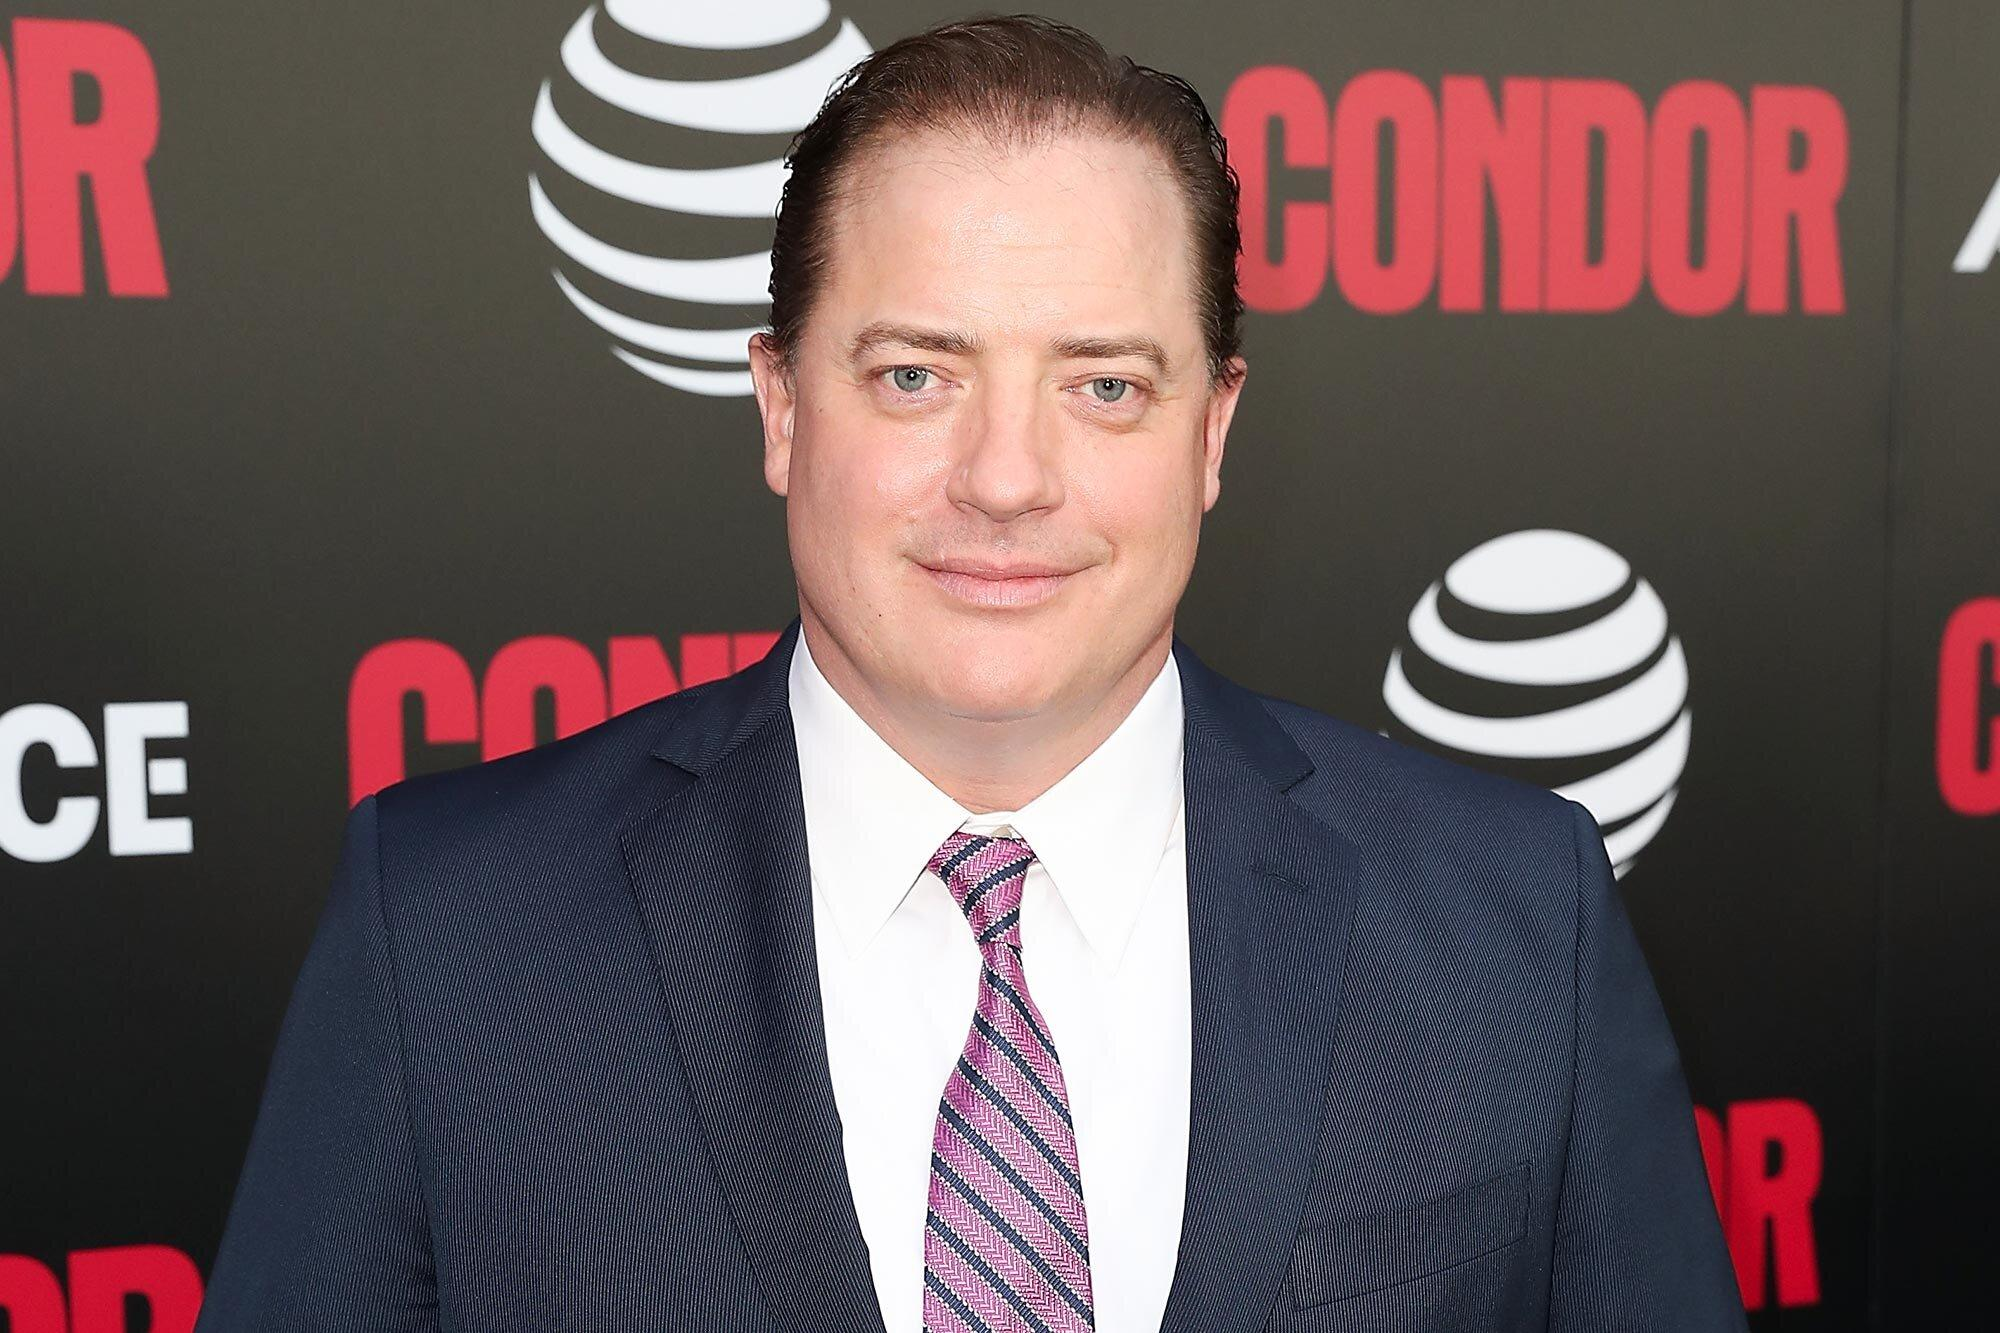 Brendan Fraser to star in Darren Aronofsky's 'The Whale,' about man with compulsive eating disorder